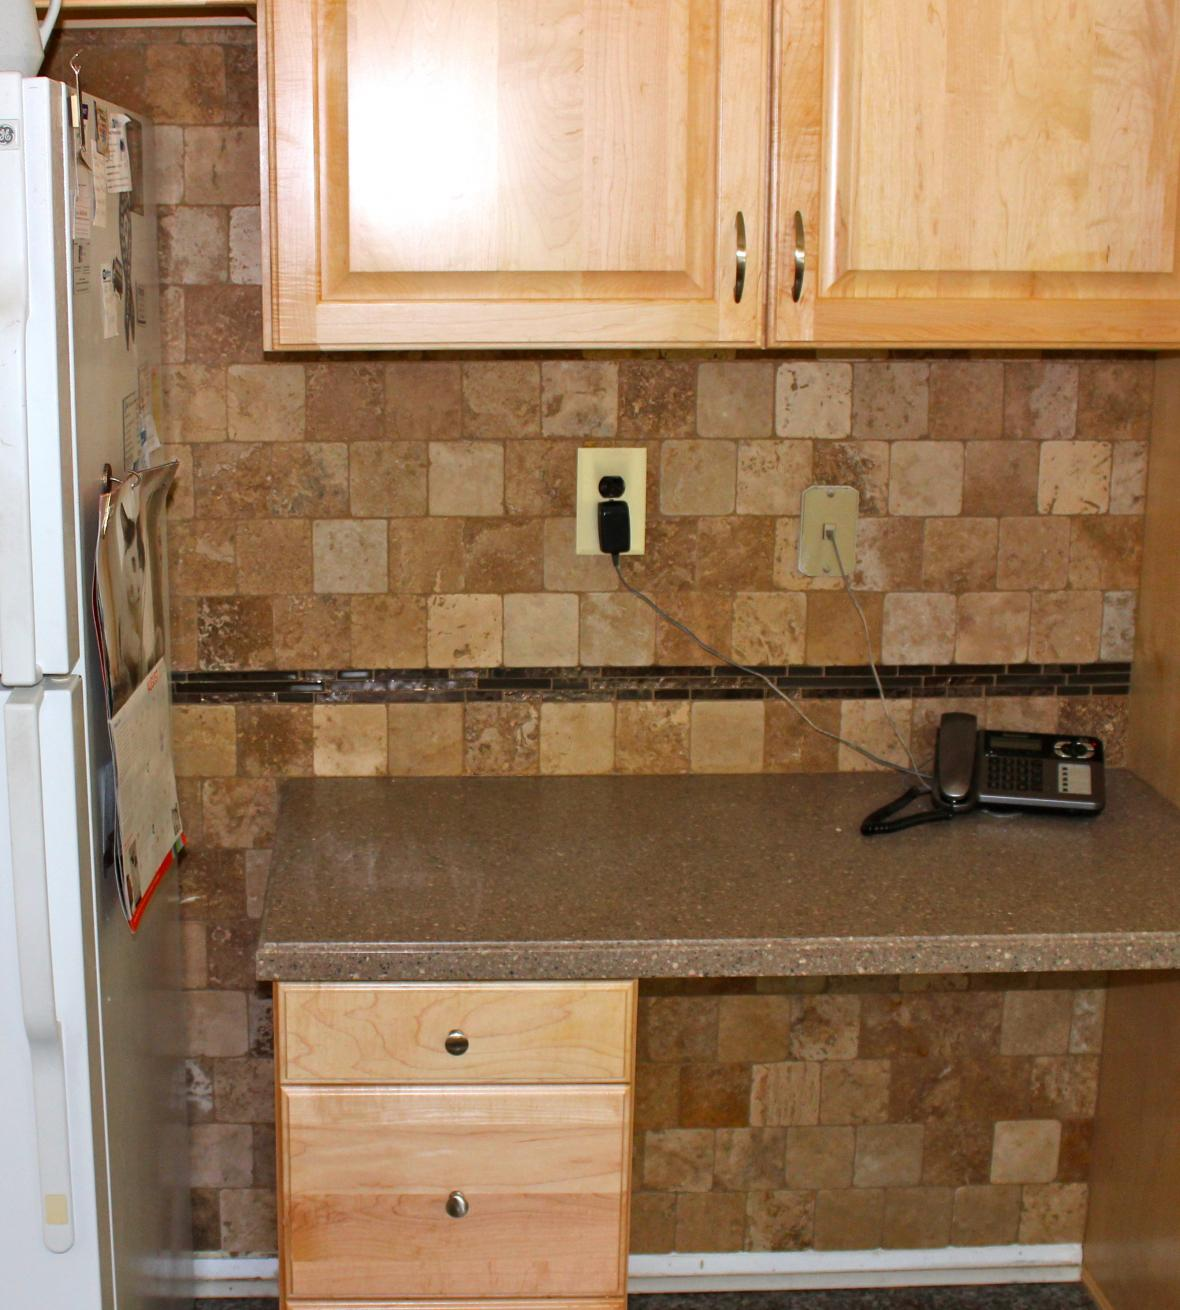 Backsplash behind fridge new jersey custom tile - Custom kitchen backsplash tiles ...